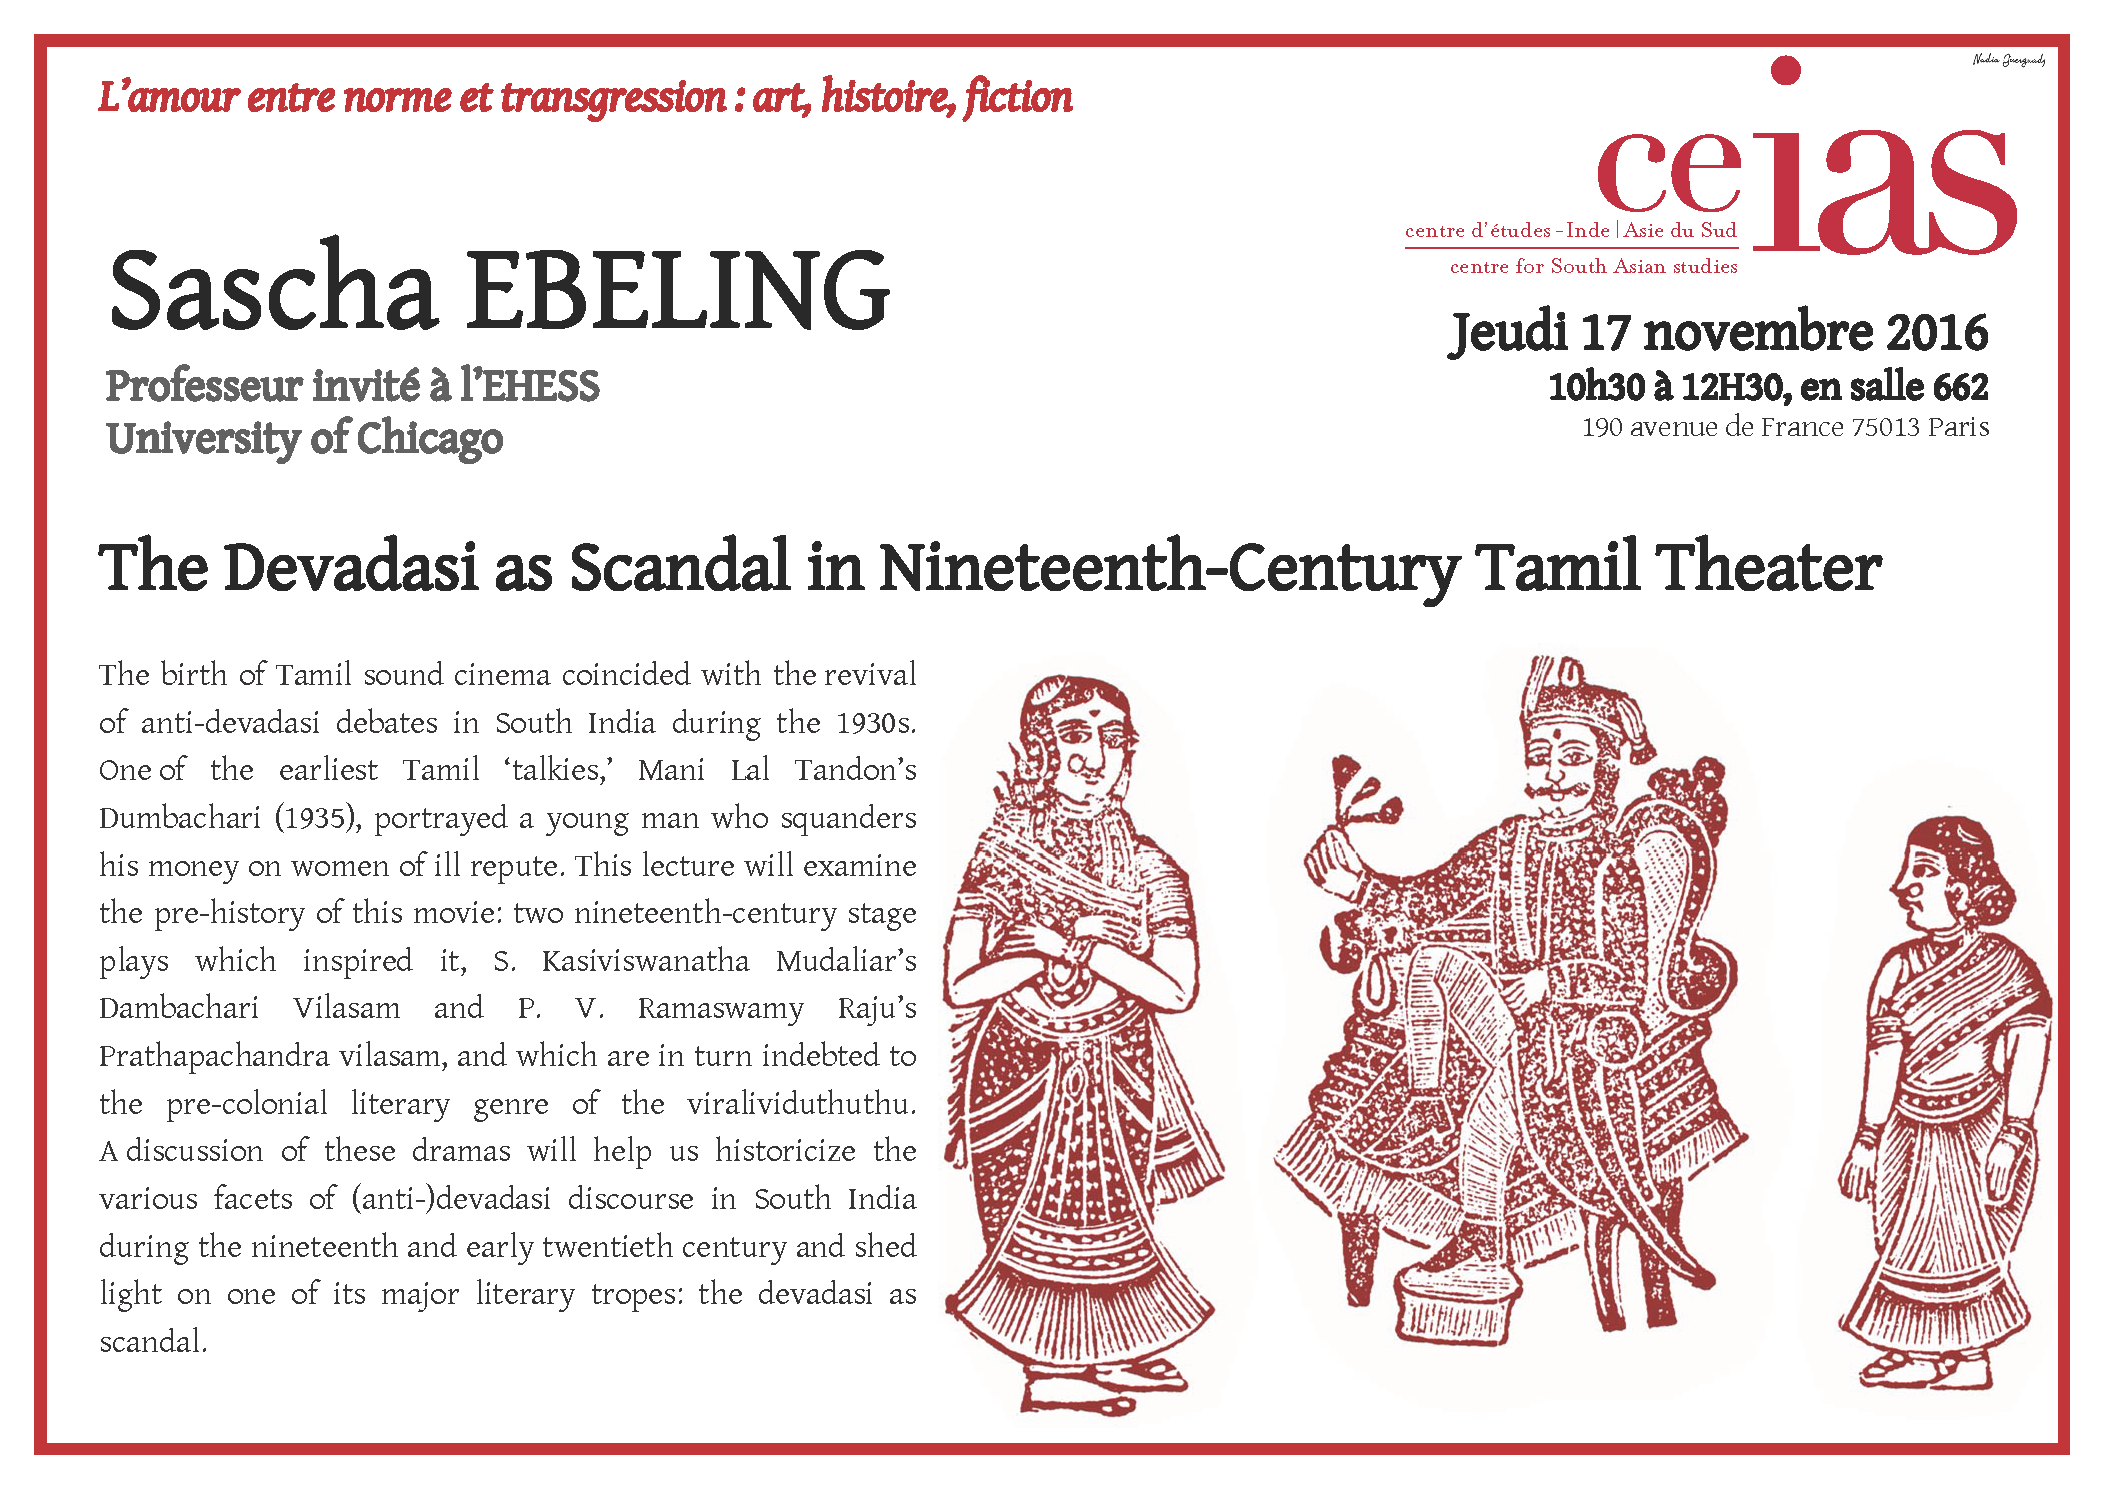 The Devadasi as Scandal in Nineteenth-Century Tamil Theater